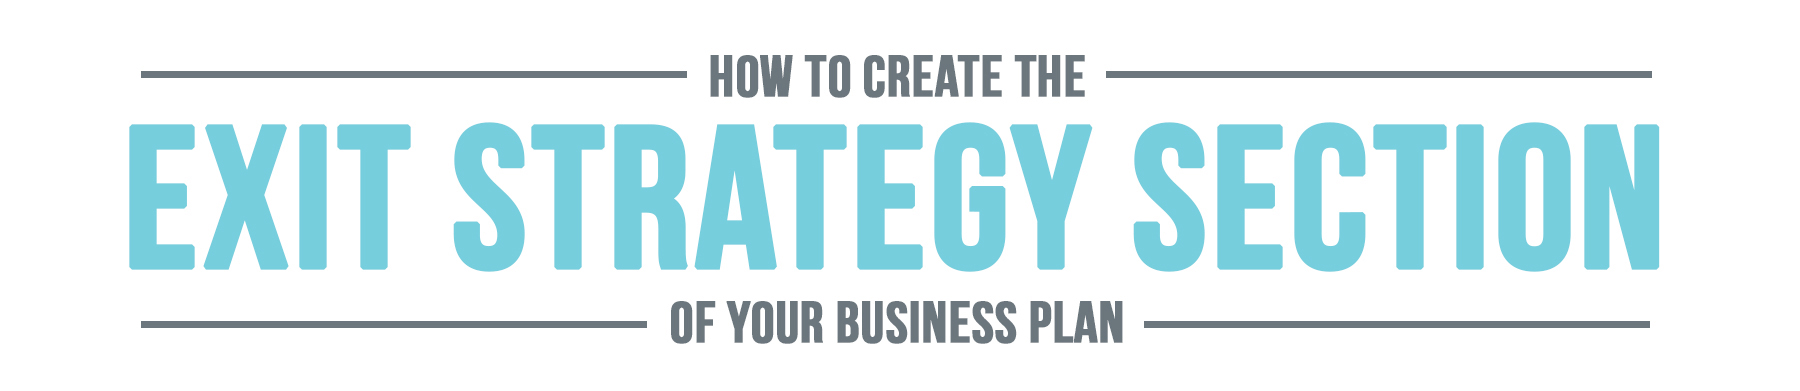 Business-Plan-Exit-Strategy-Section-Header